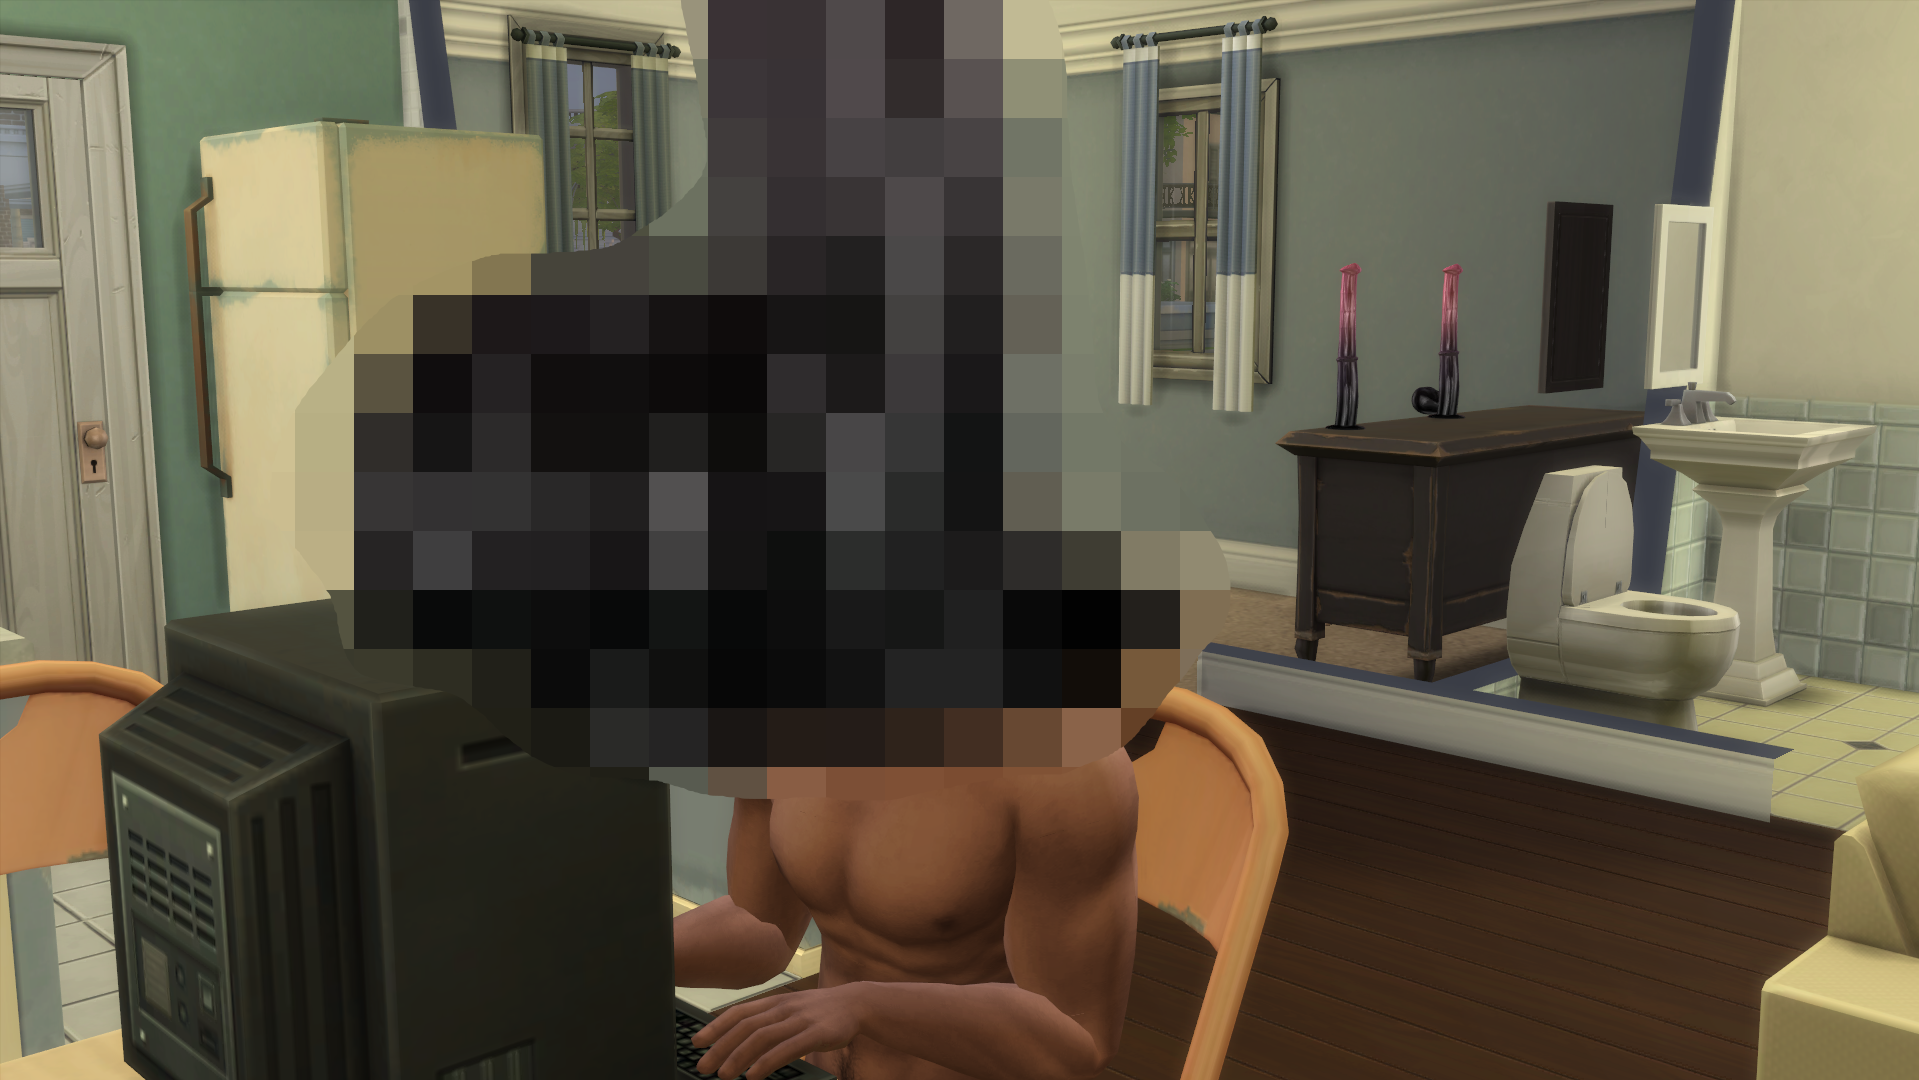 The Uplifting Tale Of 'Dildo Face', A Sim Who Dared To Dream